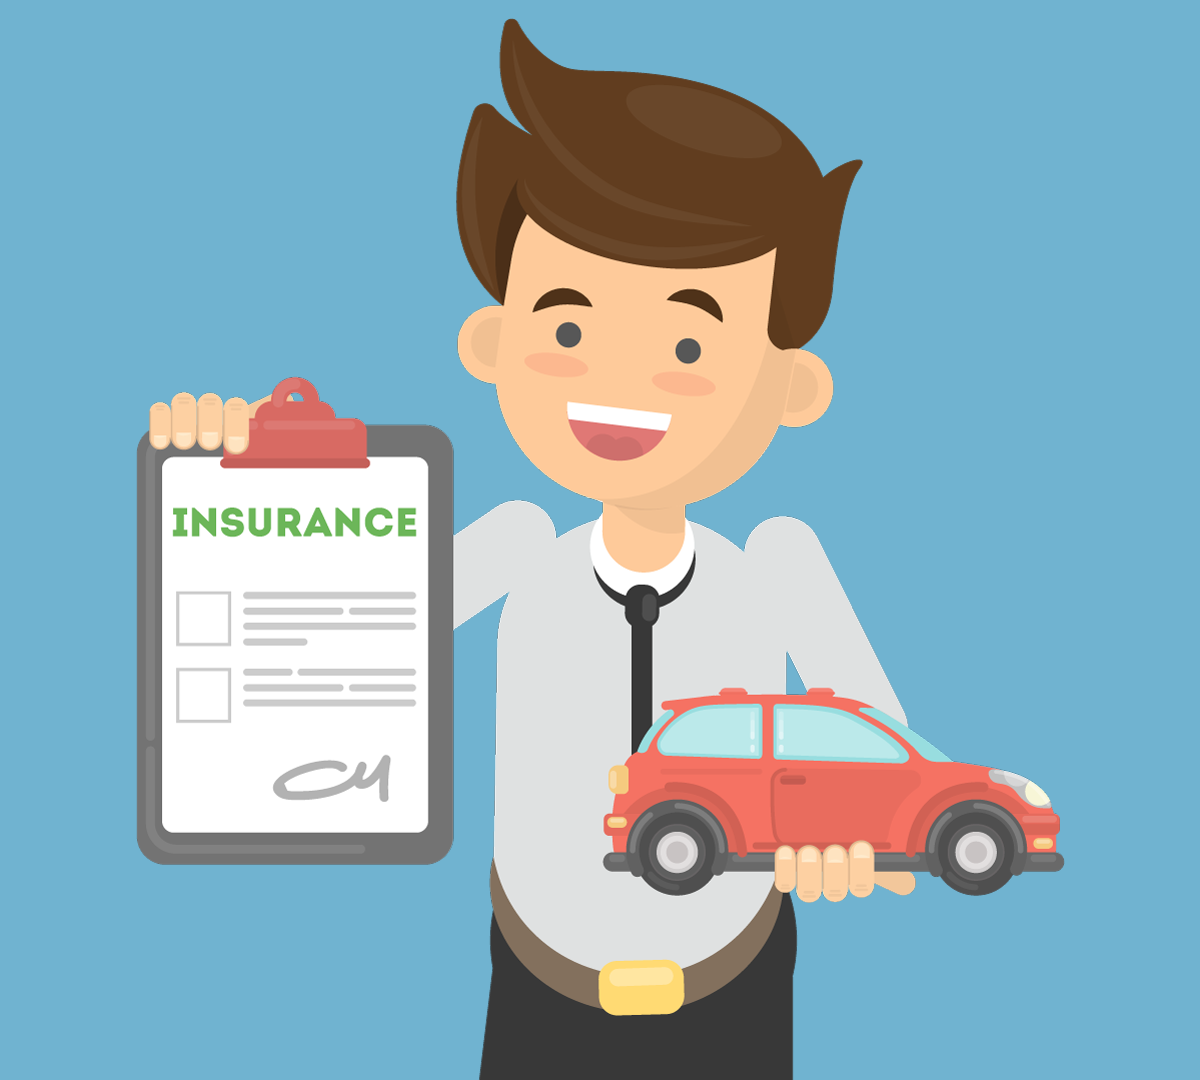 Auto Insurance Policy.